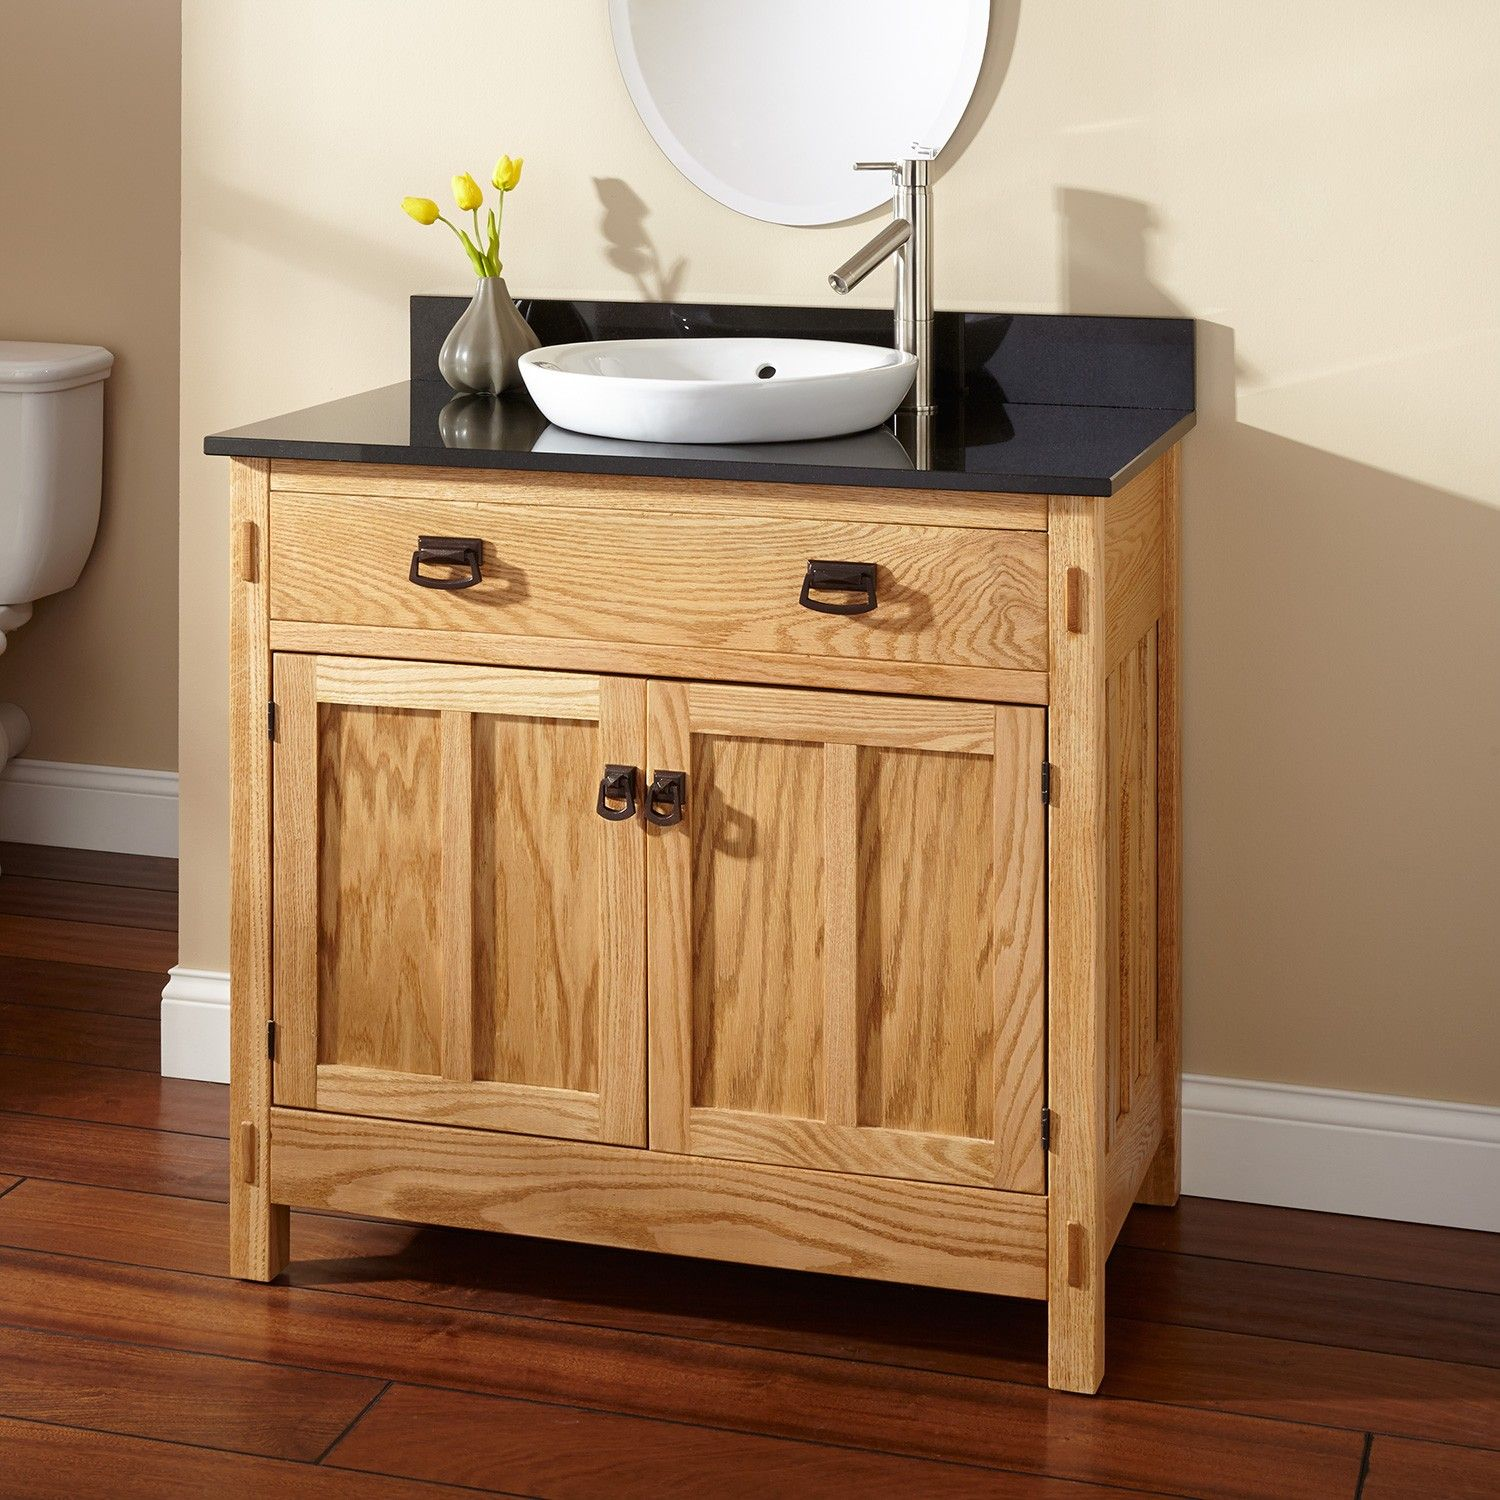 36 Mission Hardwood Vanity For Semi Recessed Sink Signature Hardware Vessel Sink Vanity Vanity Sink Bathroom Sink Vanity